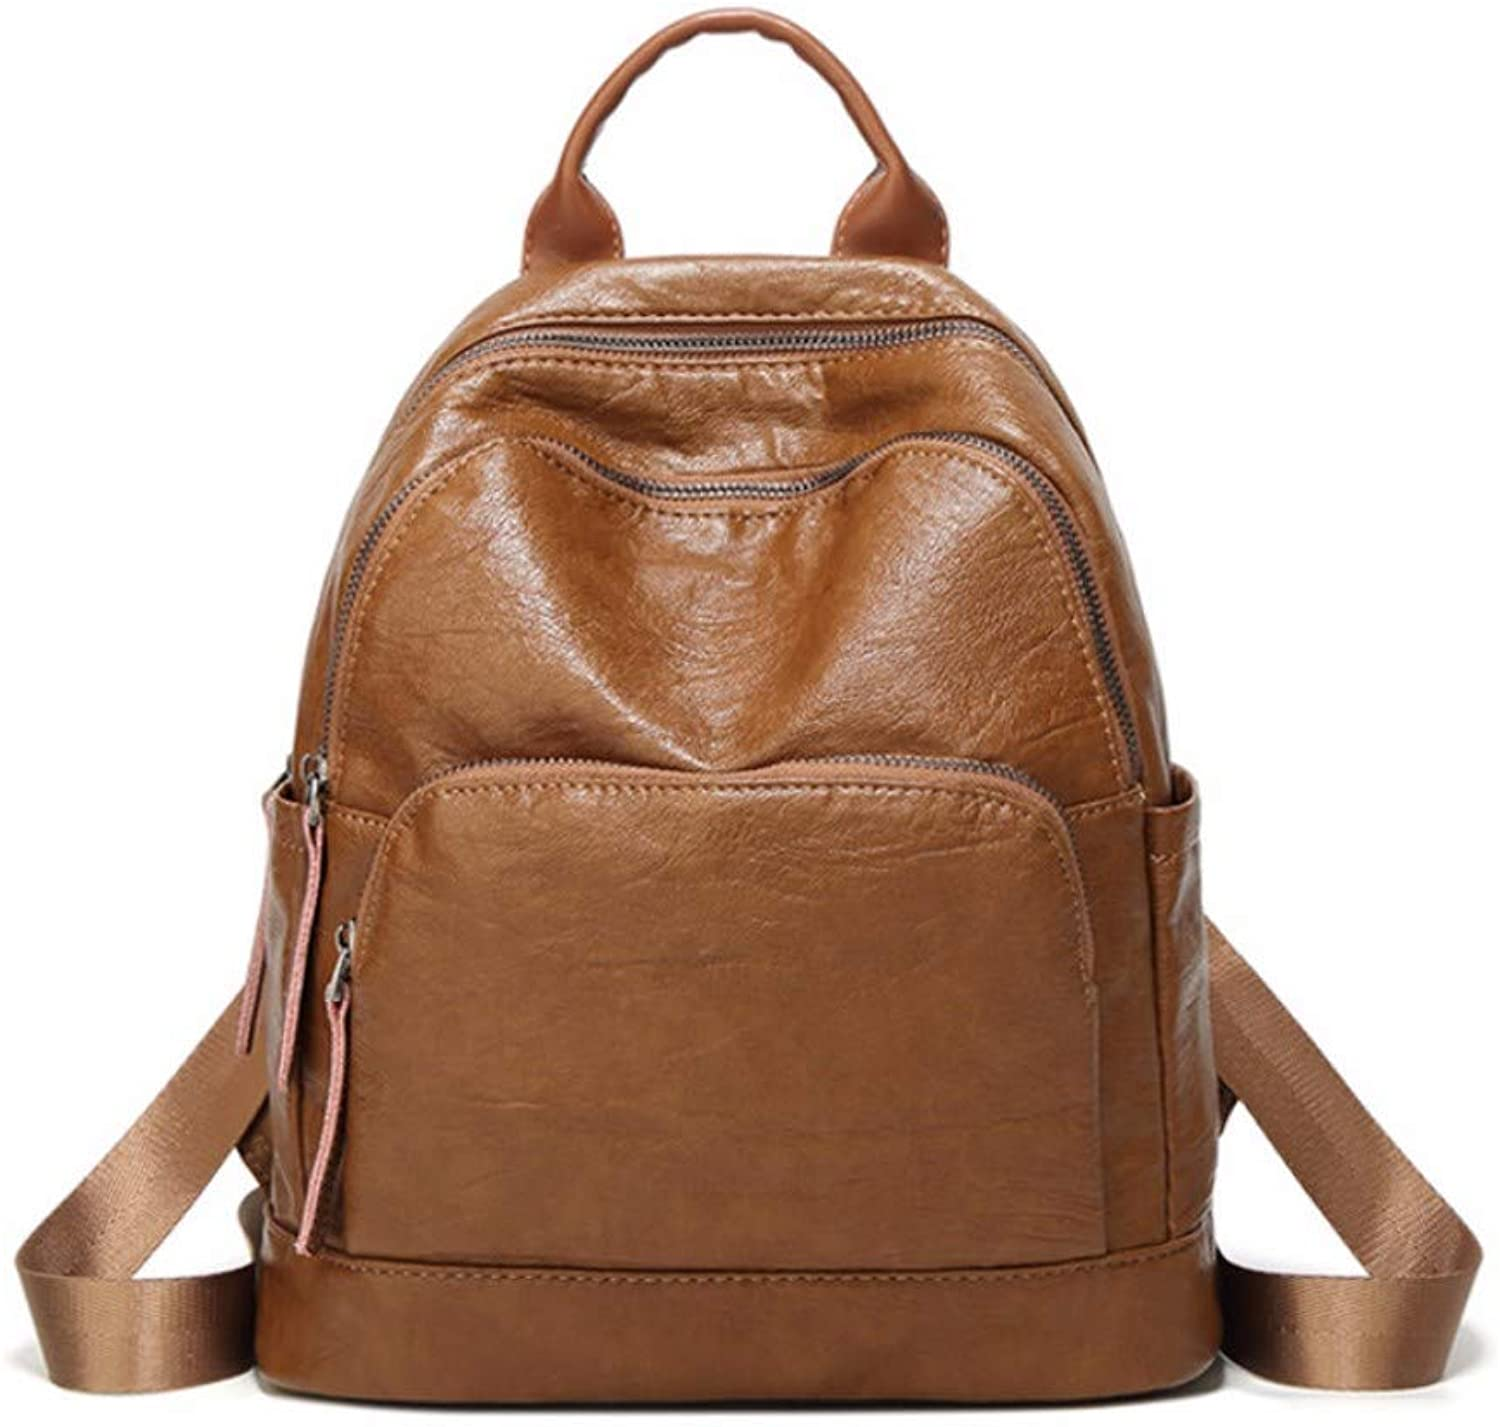 JQSM Simple Preppy Style Women Backpack Classic Waterproof Soft Leather Shoulder Bag All Match School Backpack Durable Travel Bag